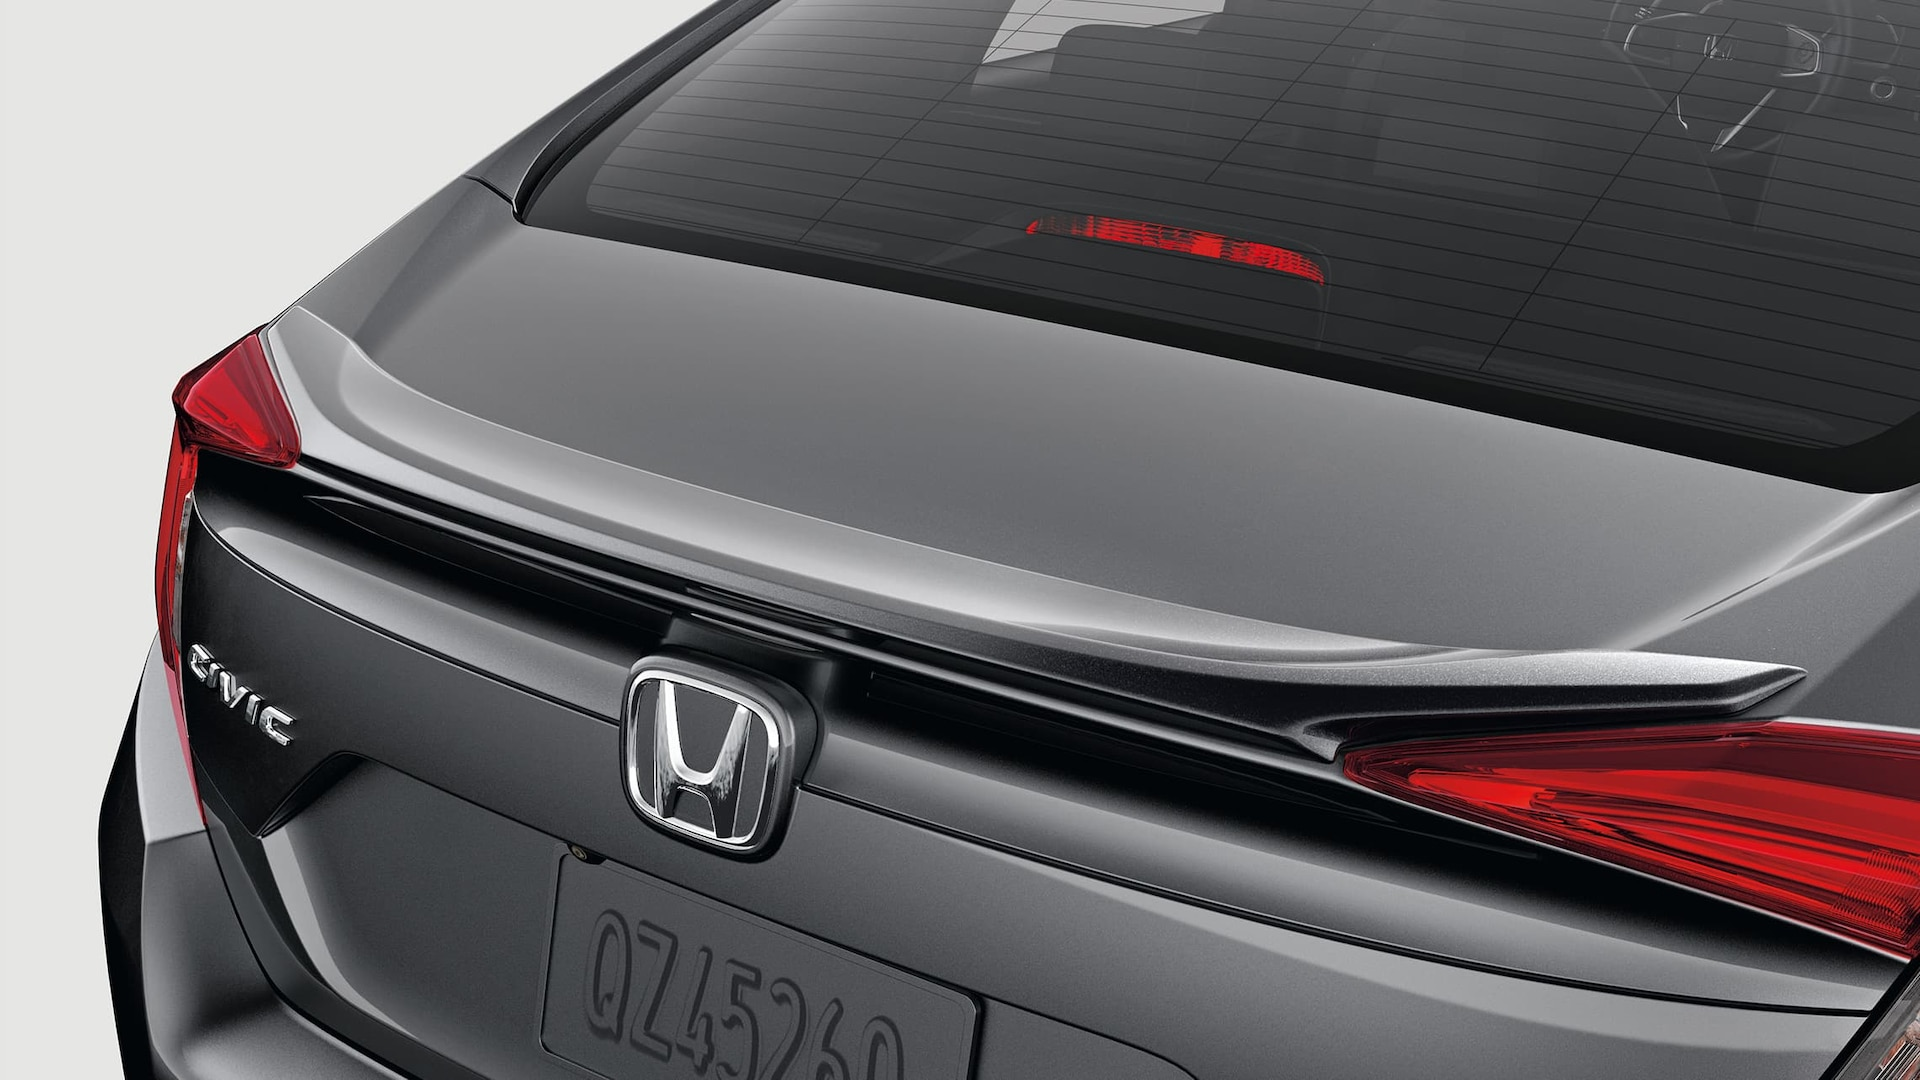 Decklid spoiler detail on the 2020 Honda Civic Touring Sedan in Modern Steel Metallic.